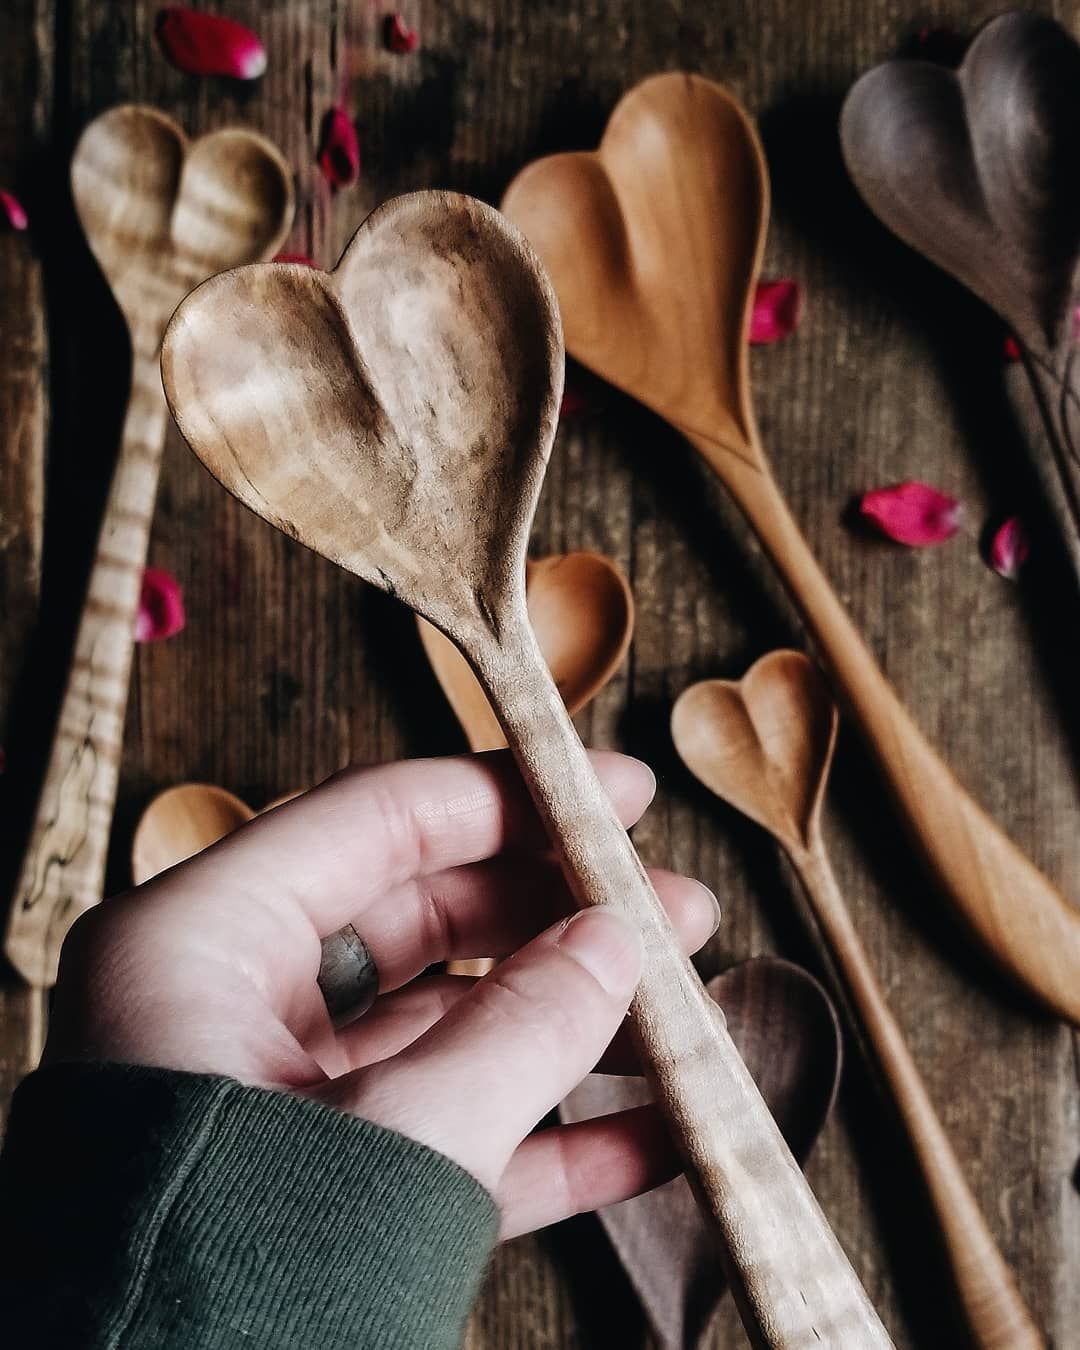 Hand Carved Wooden Dreamware Heart Spoon Made By The Polder Family Of Old World Kitchen By Polder S In 2020 Old World Kitchens Old World Market Wooden Kitchen Utensils